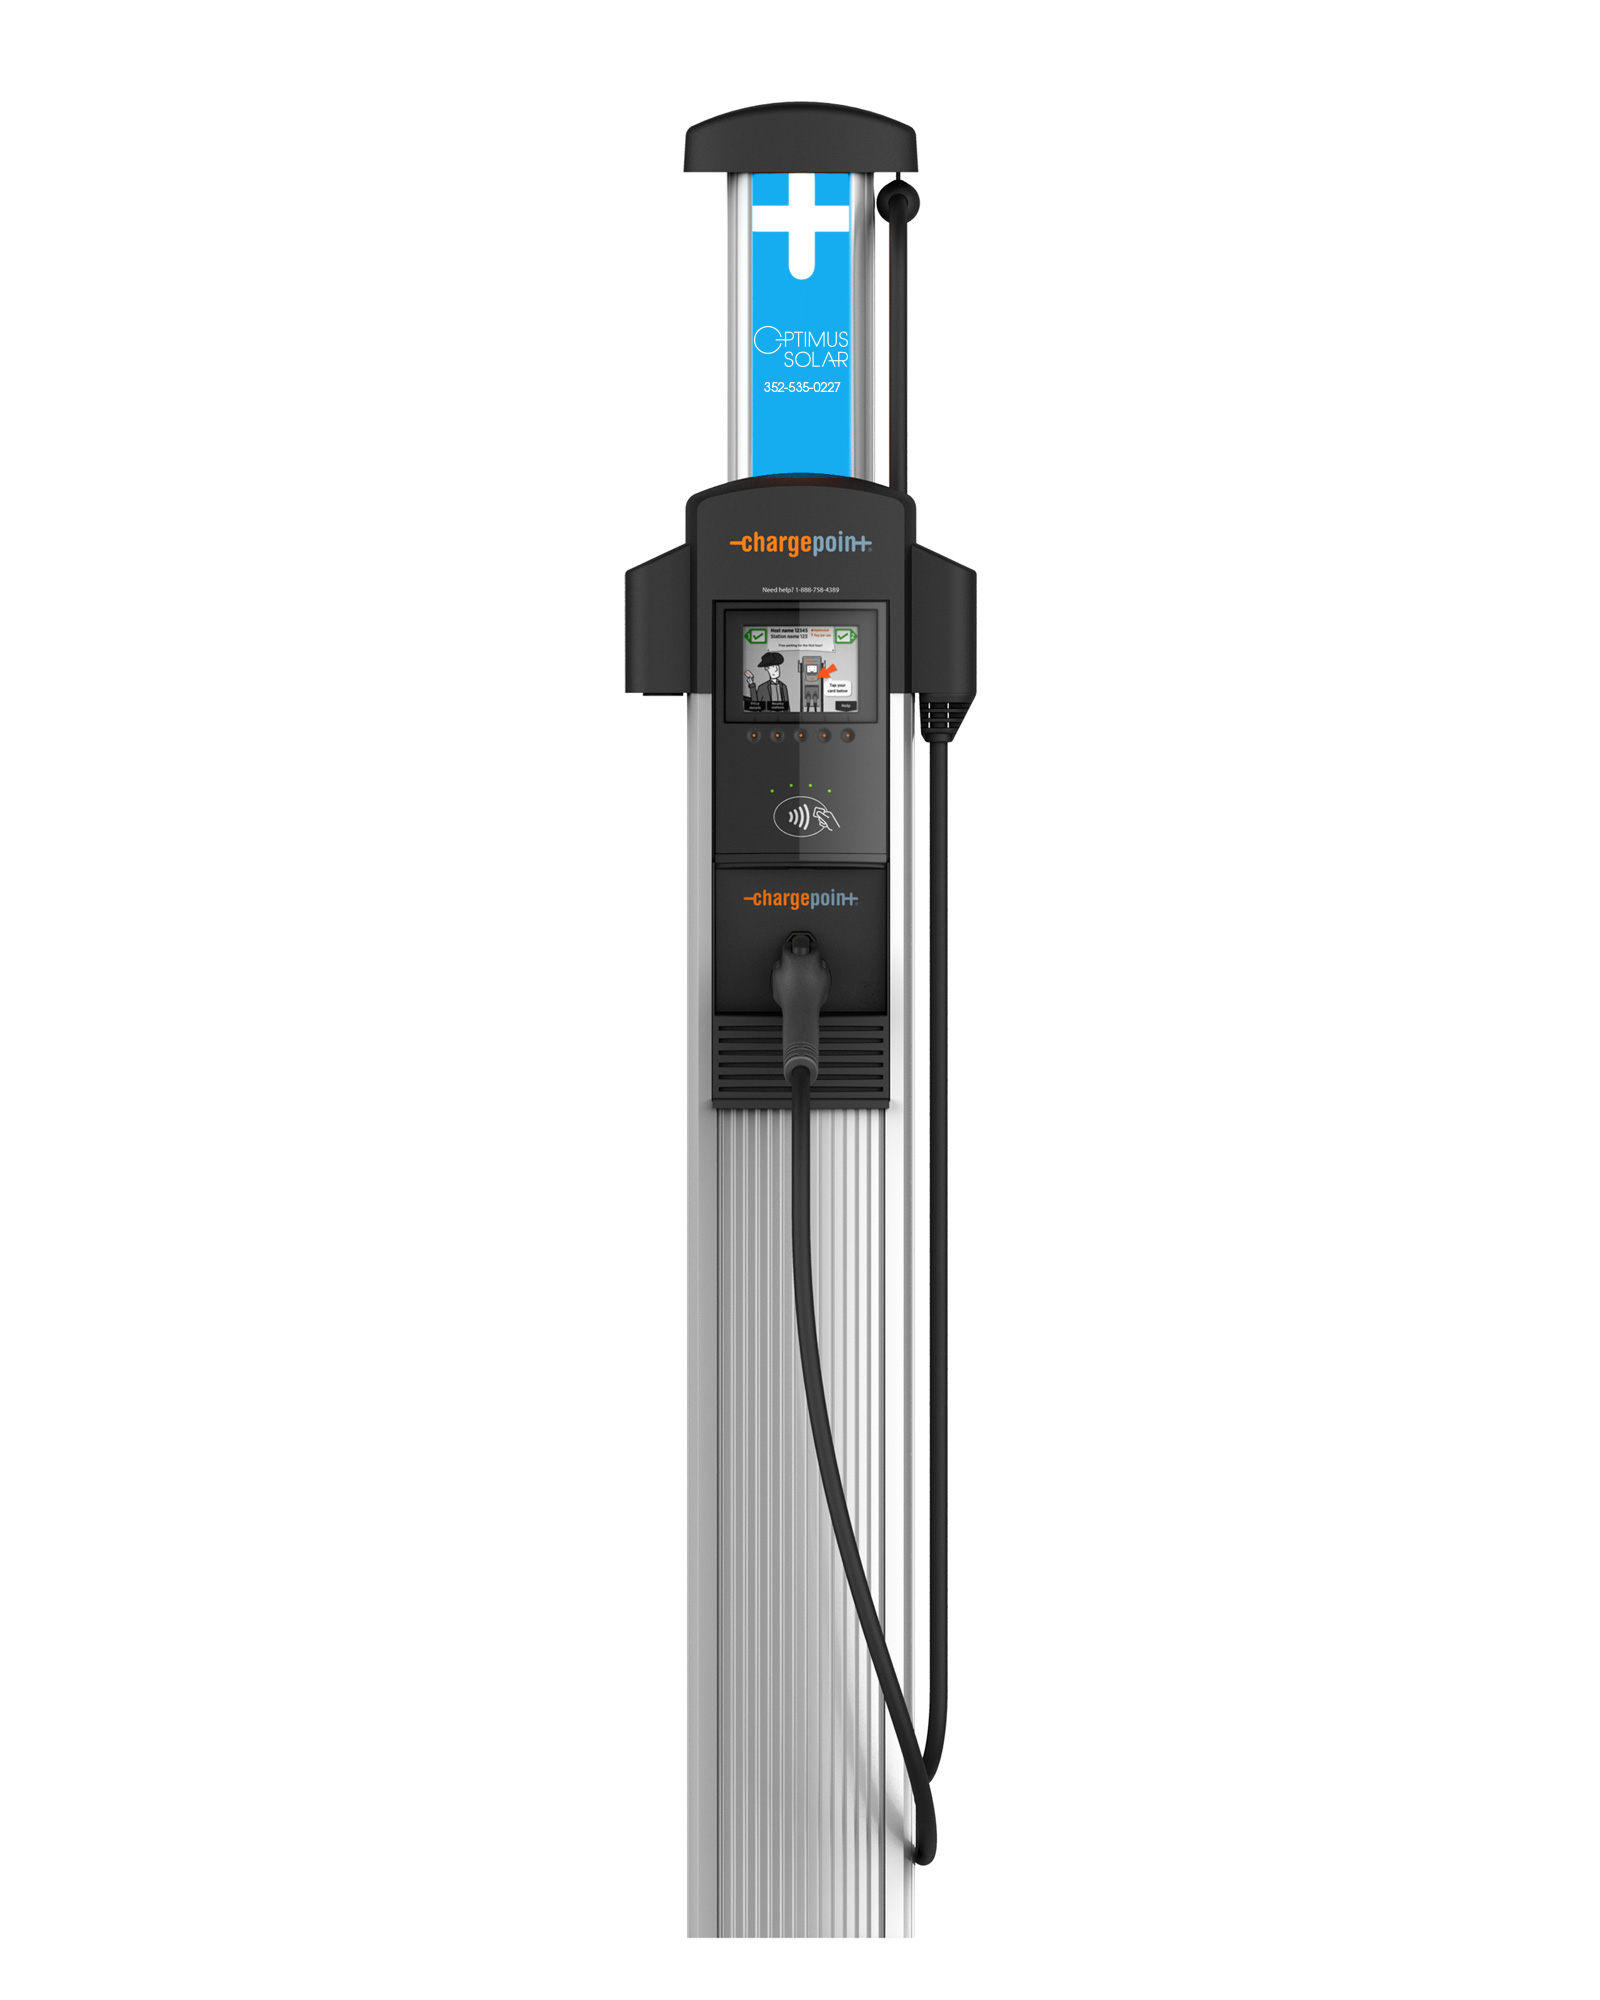 Branded_Chargepoint_Station_OptimusSolar.png